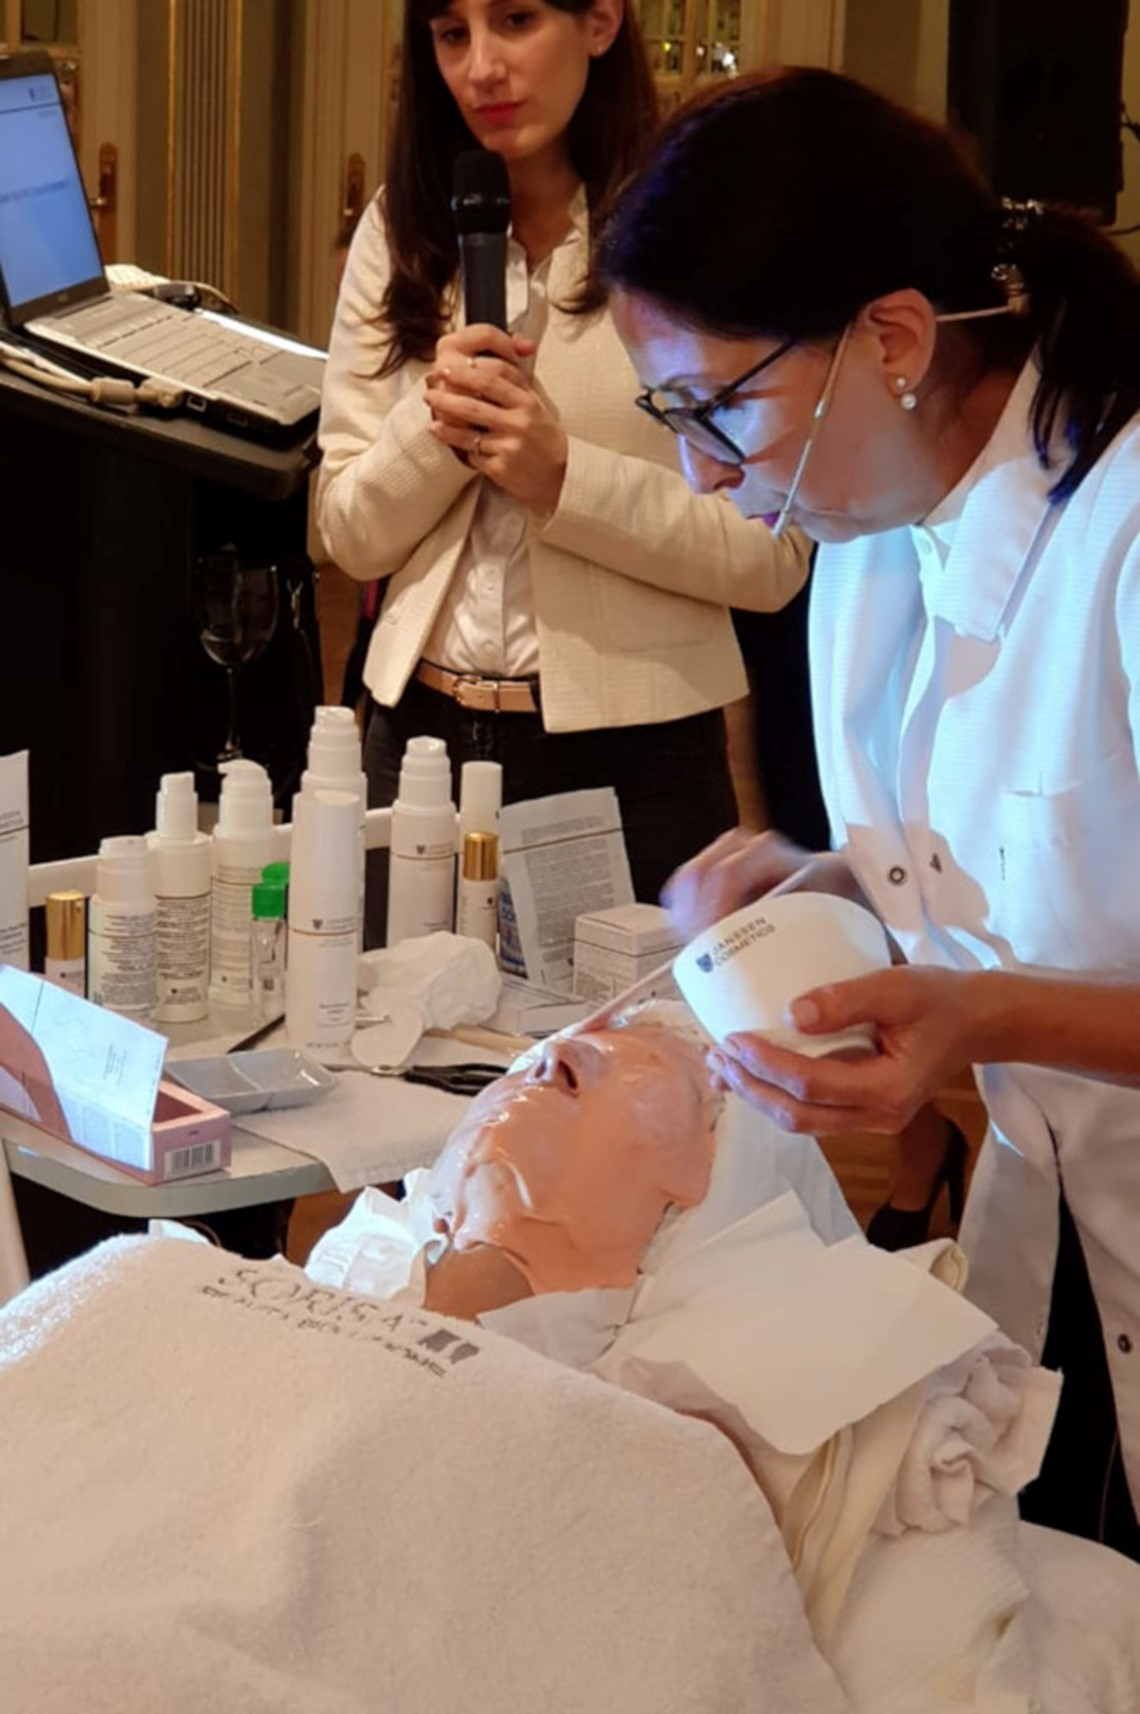 Renate Beimel demonstrating application of a peel-off mask in the cabin